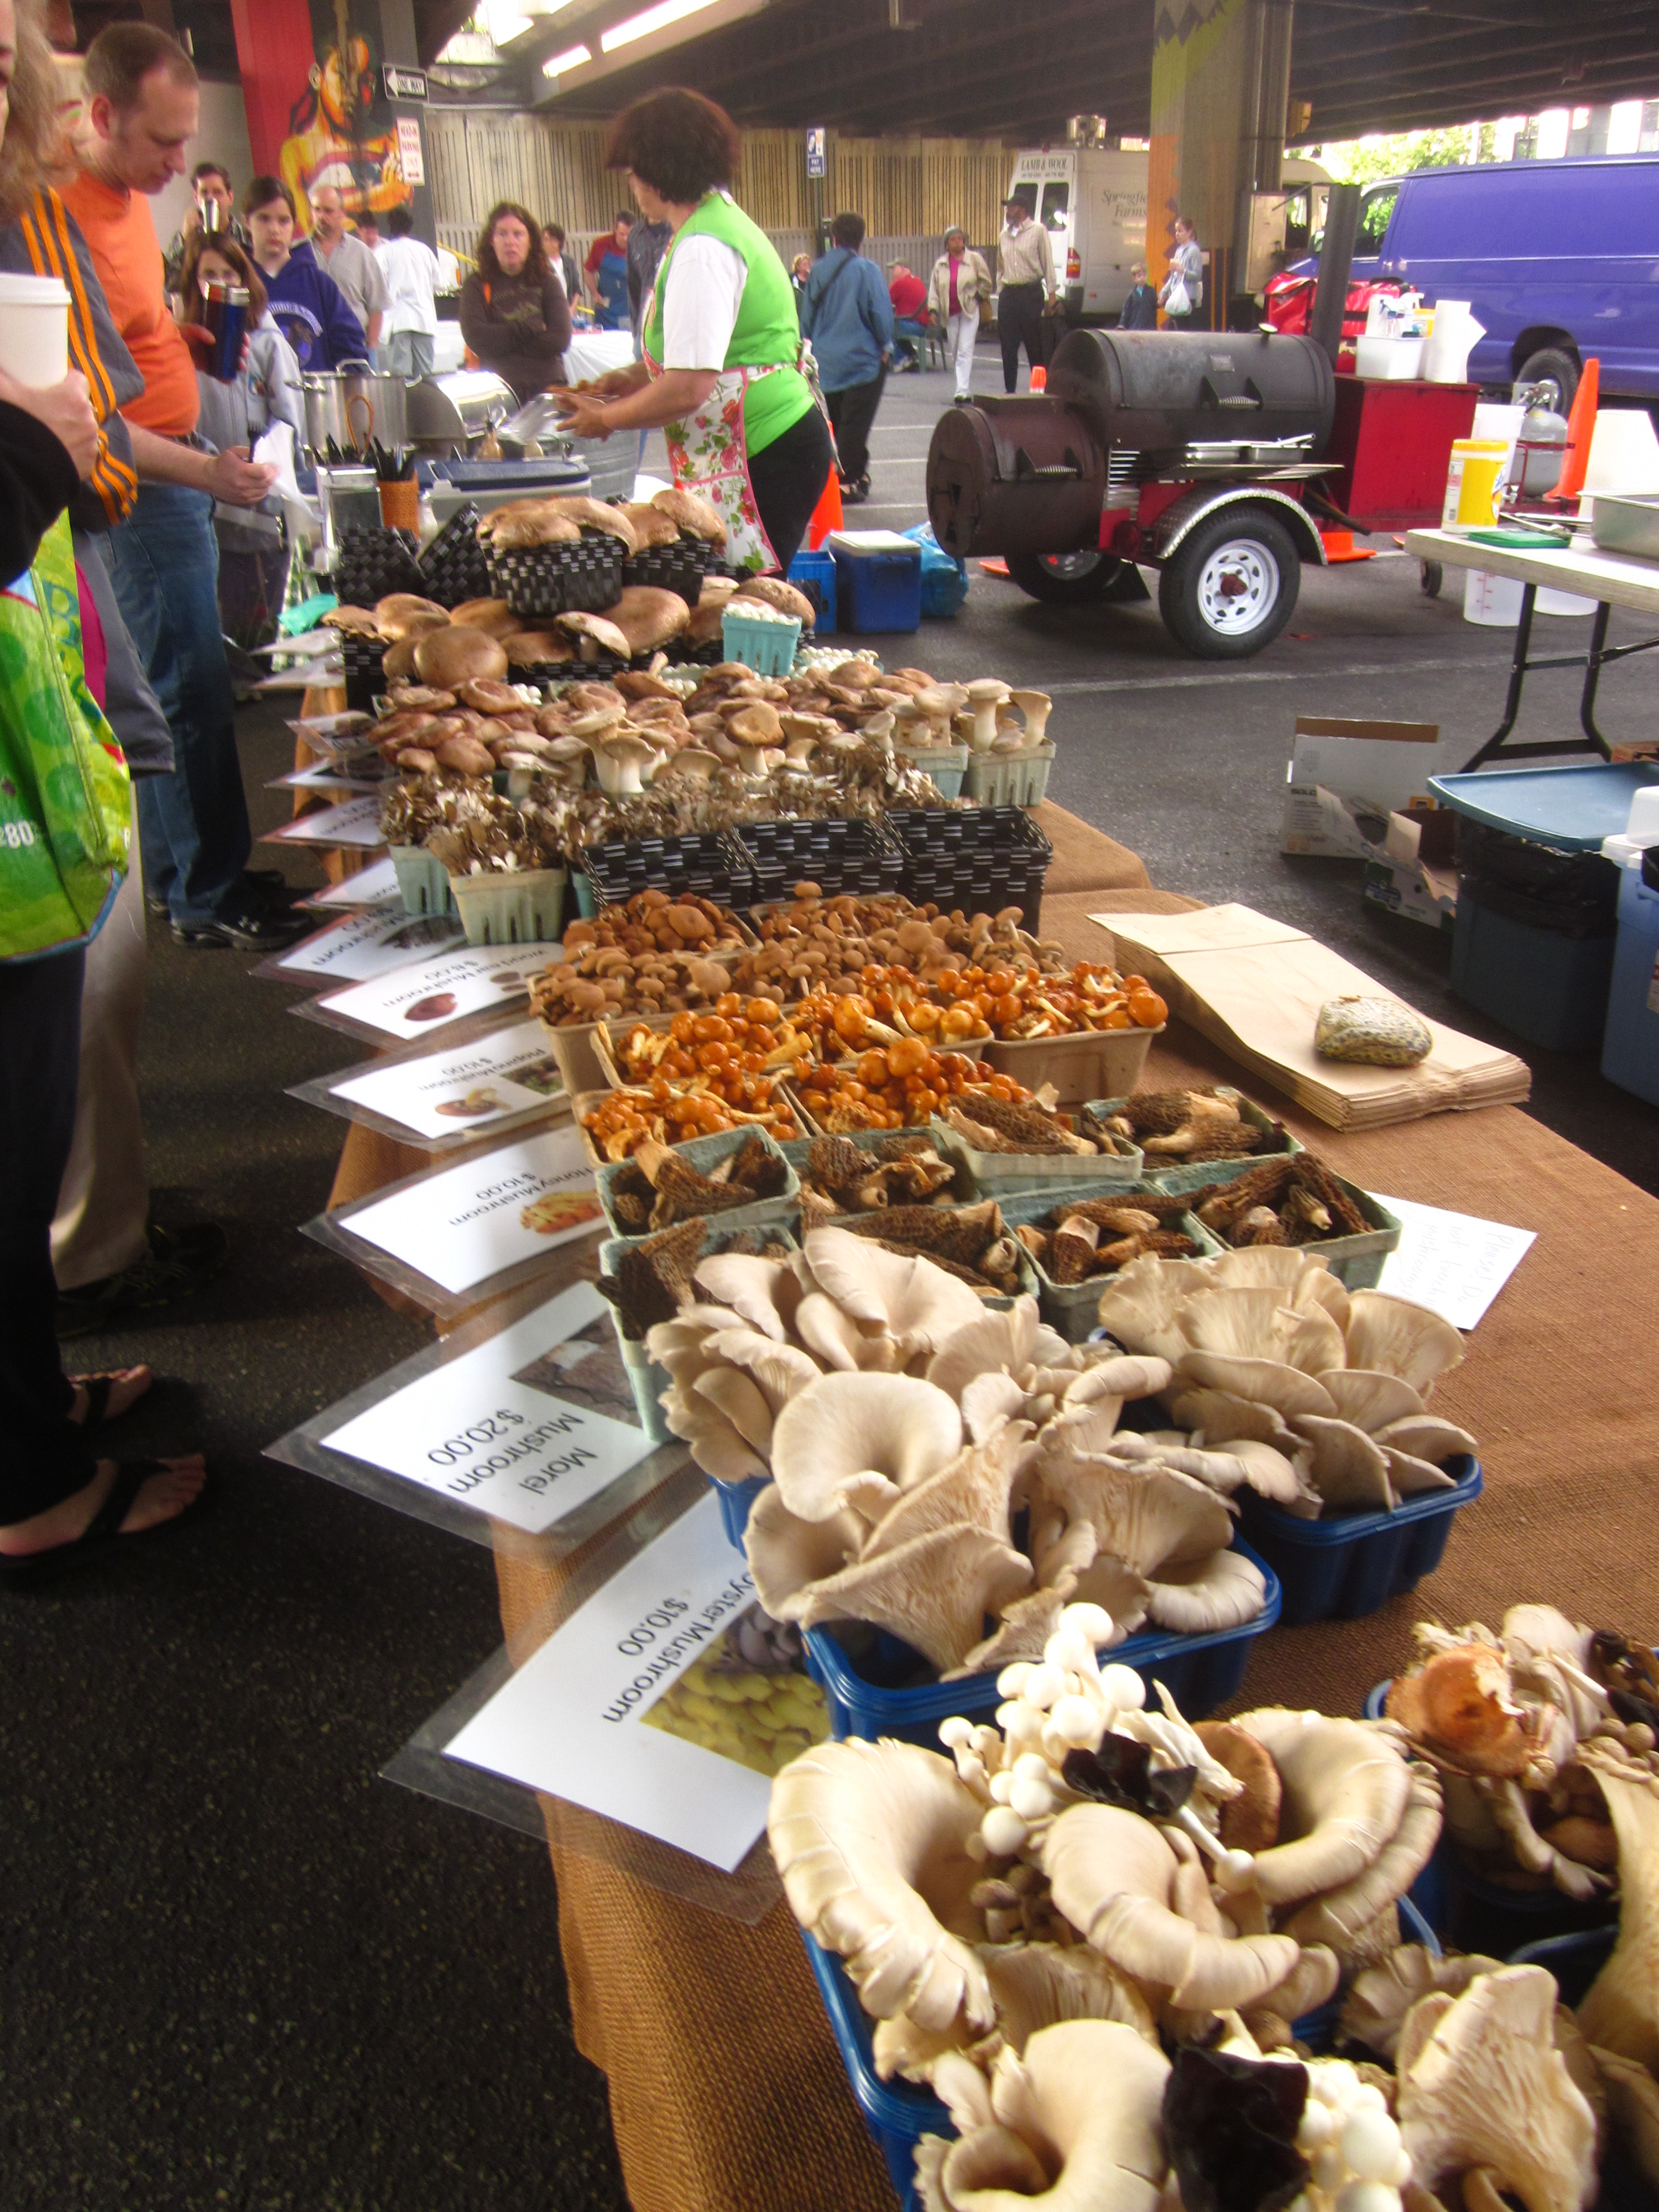 Mushrooms for sale at Farmer's Market, photo by C.Quish